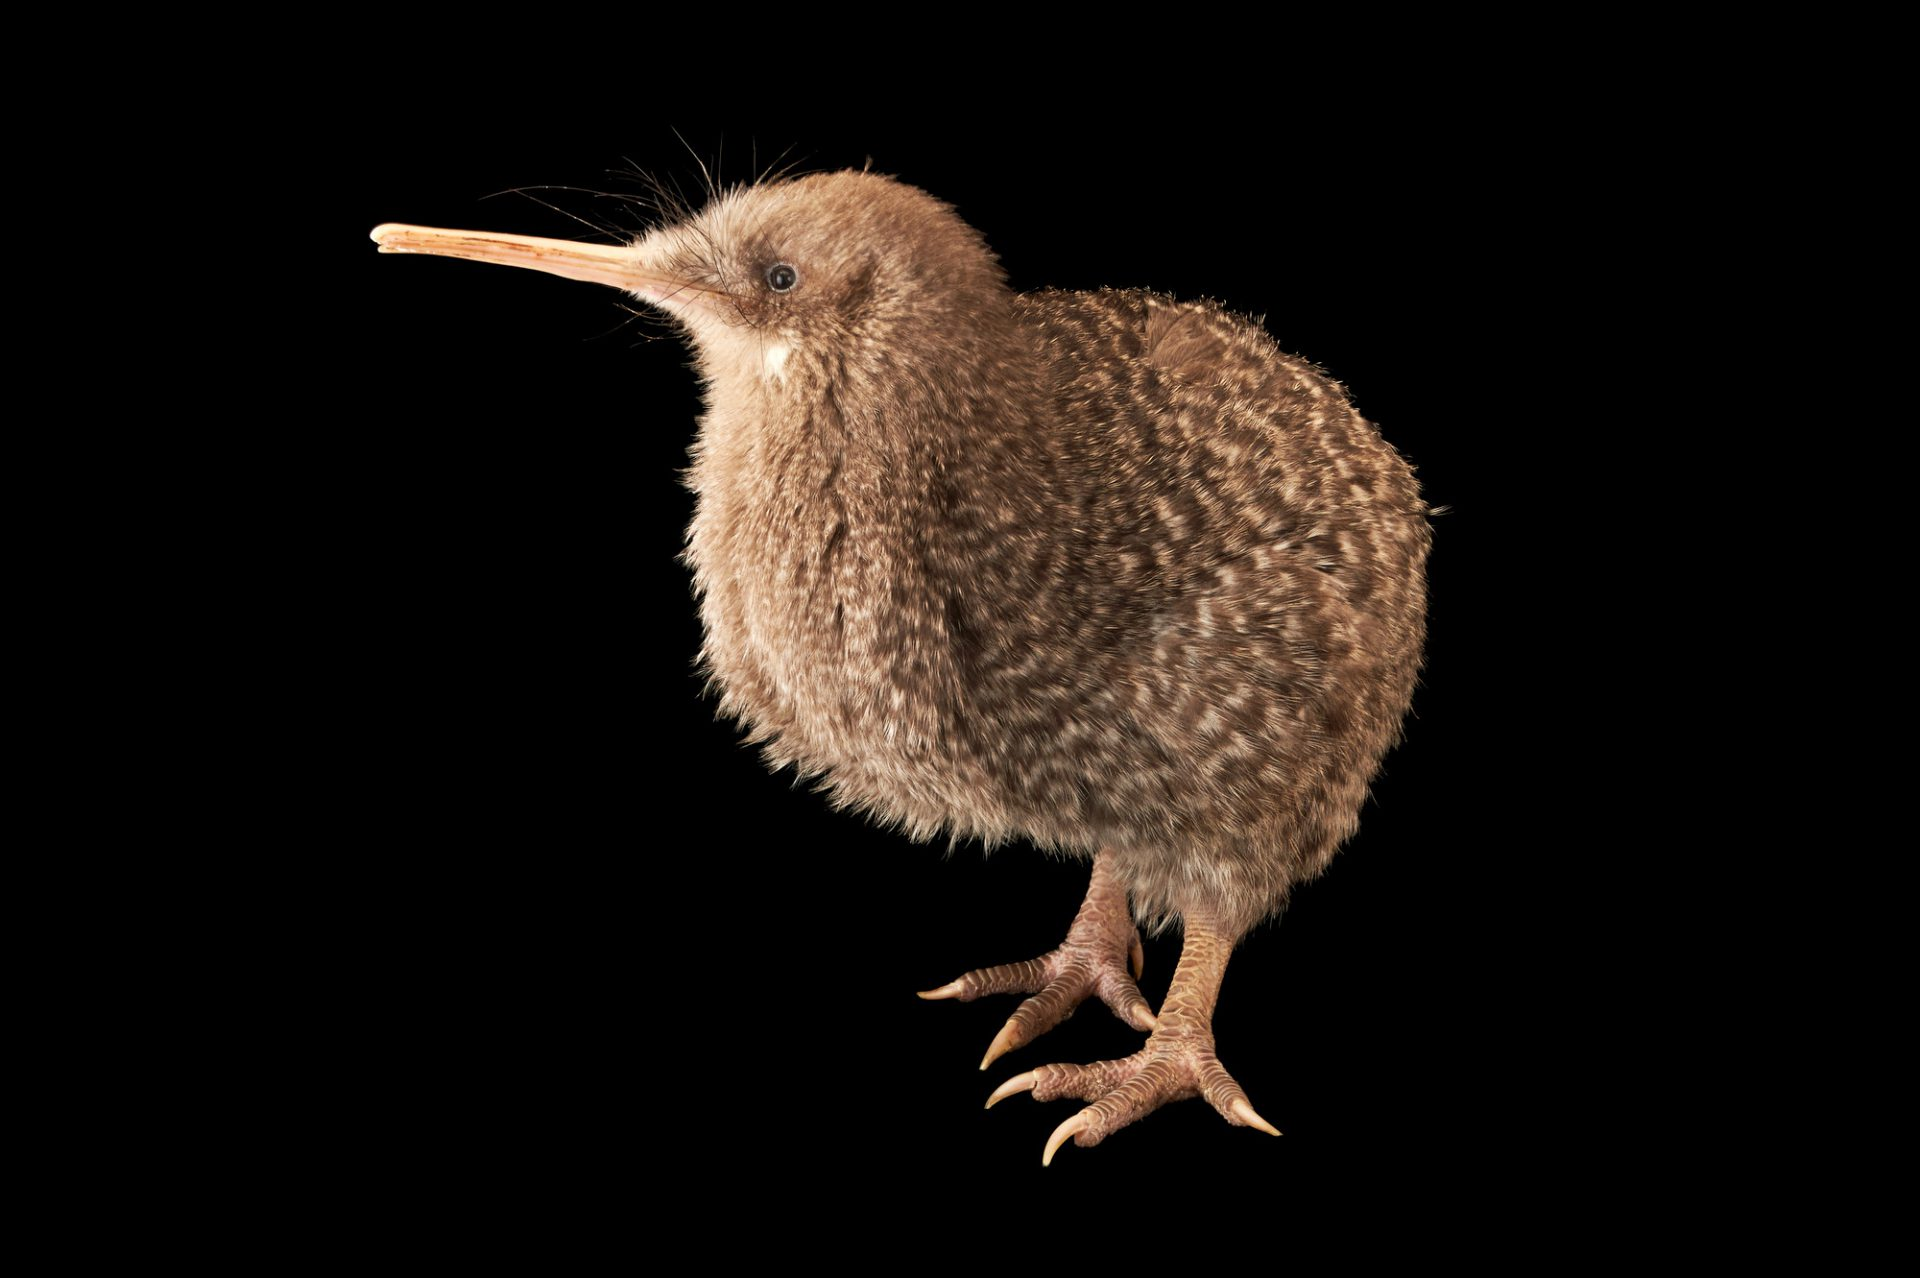 Picture of a little spotted kiwi or little gray kiwi (Apteryx owenii owenii) at the Wellington Zoo.